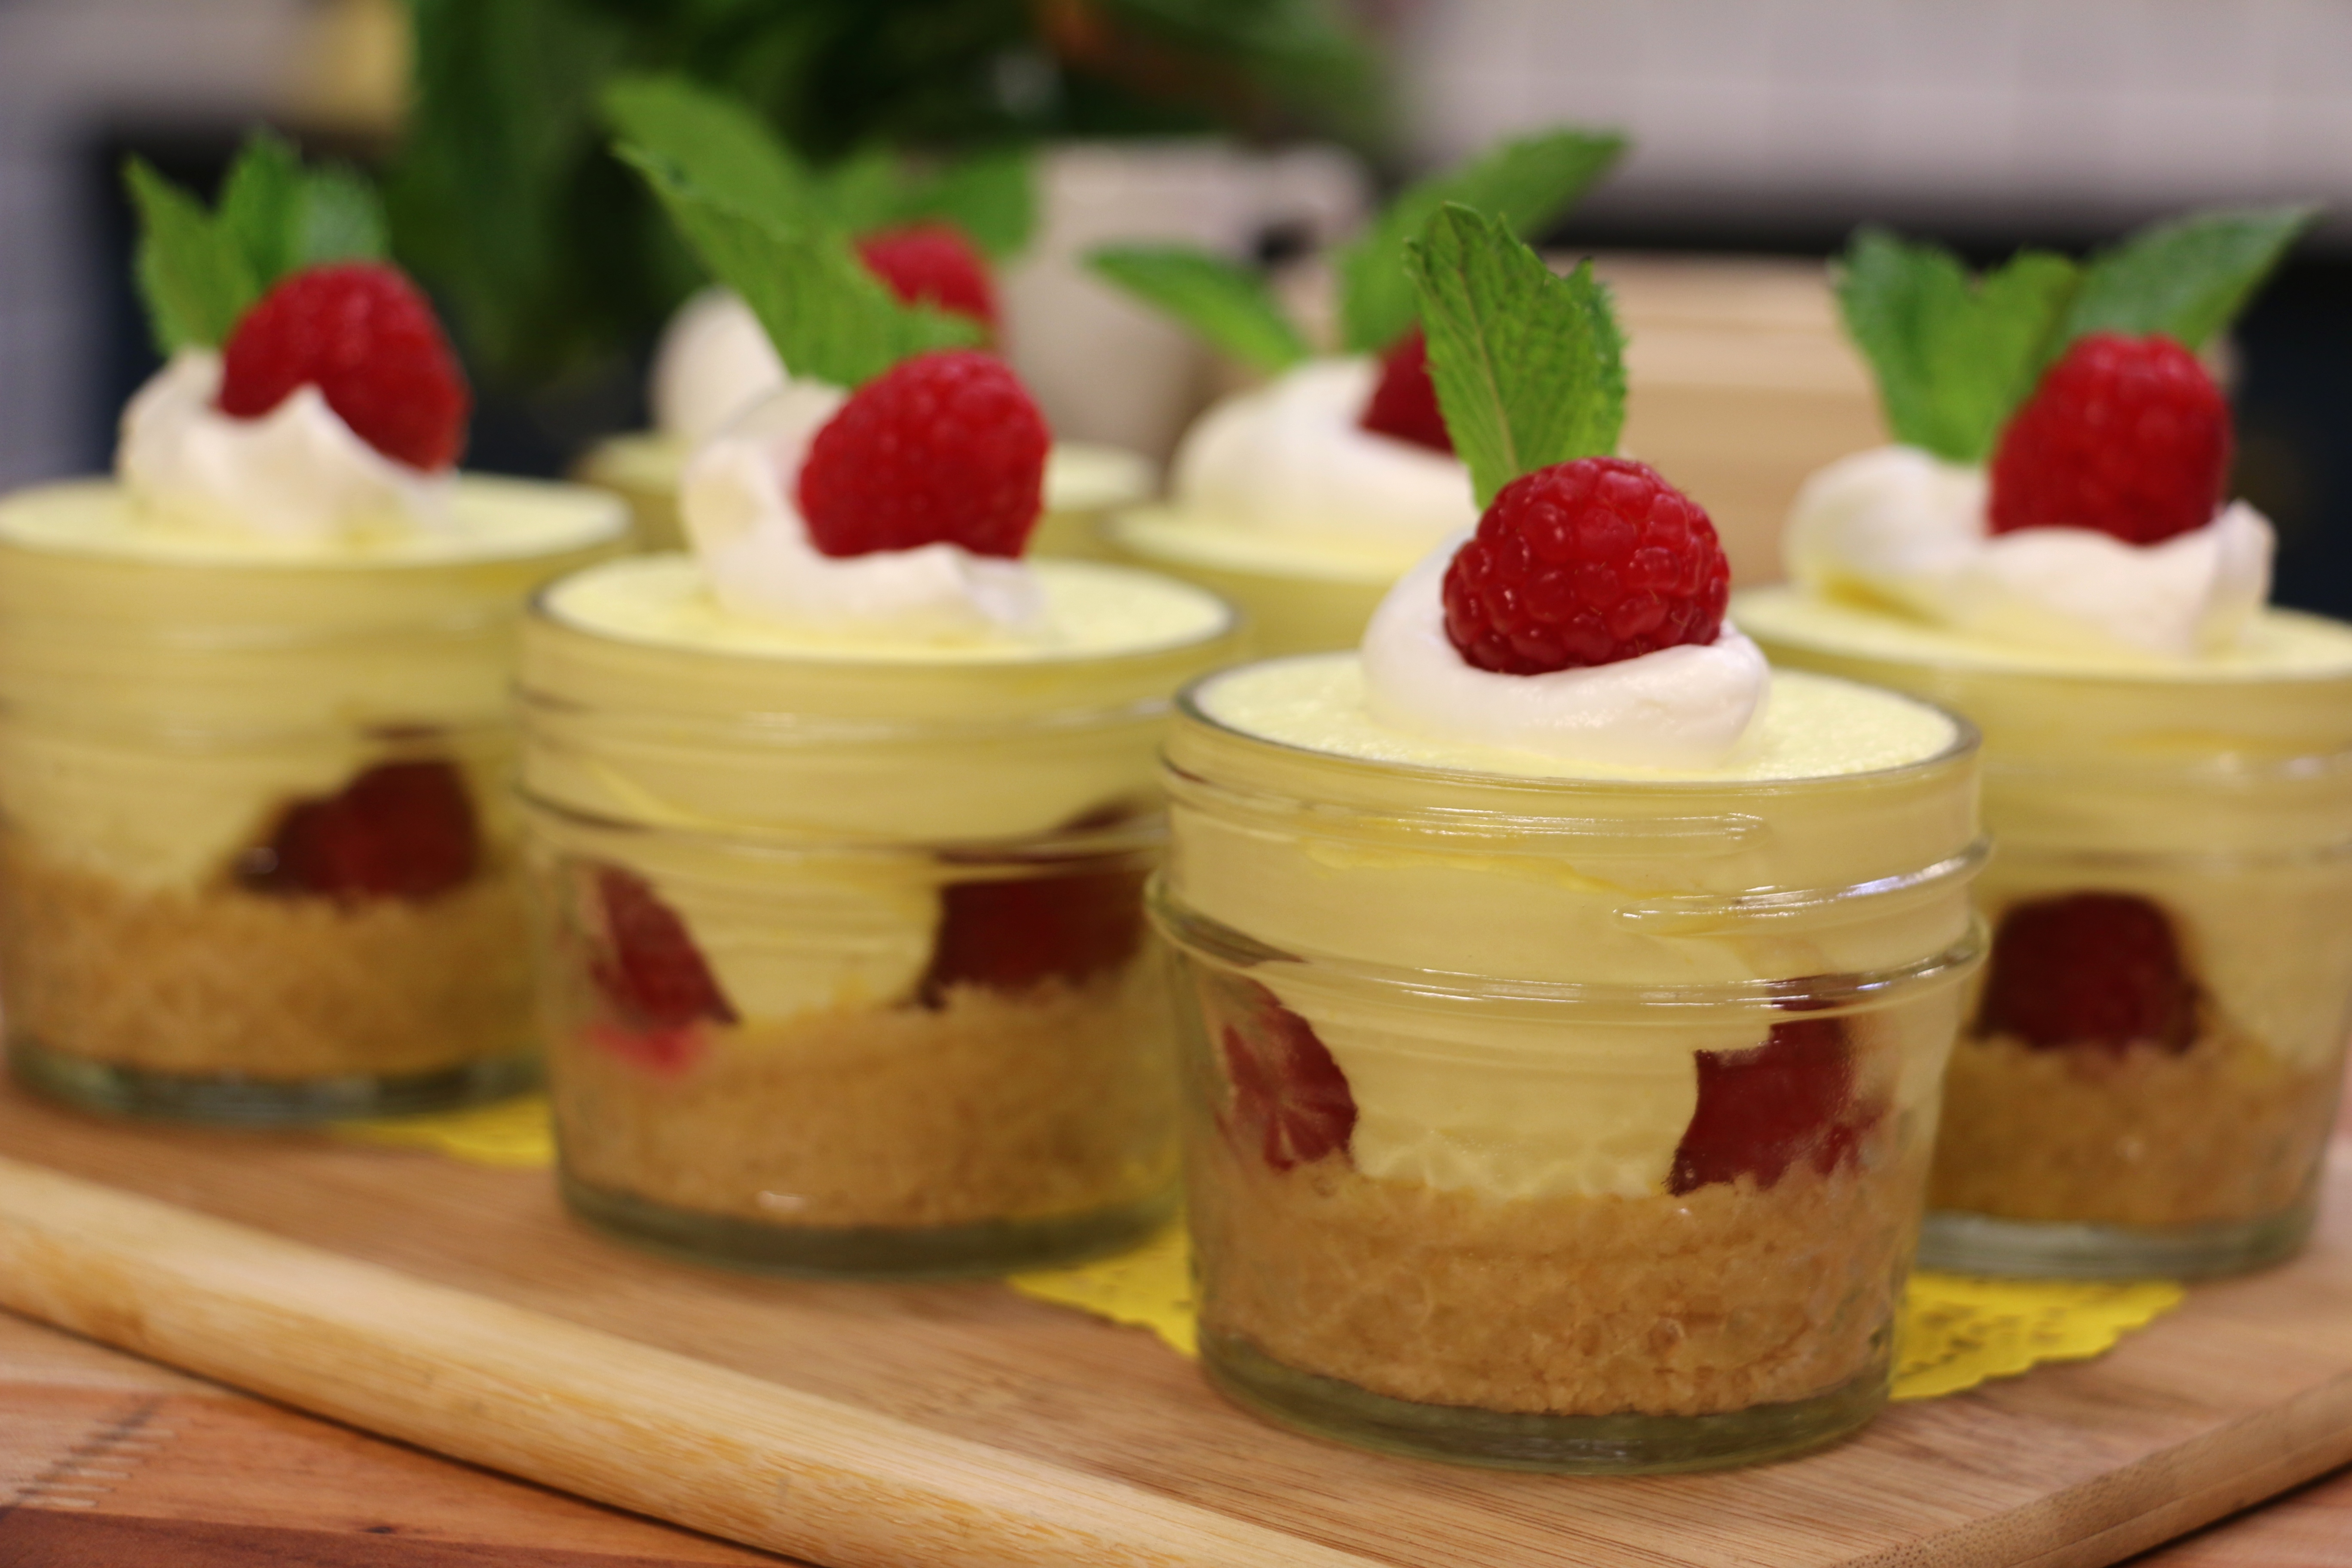 Make no-bake desserts like cheesecake and strawberry tarts - TODAY.com